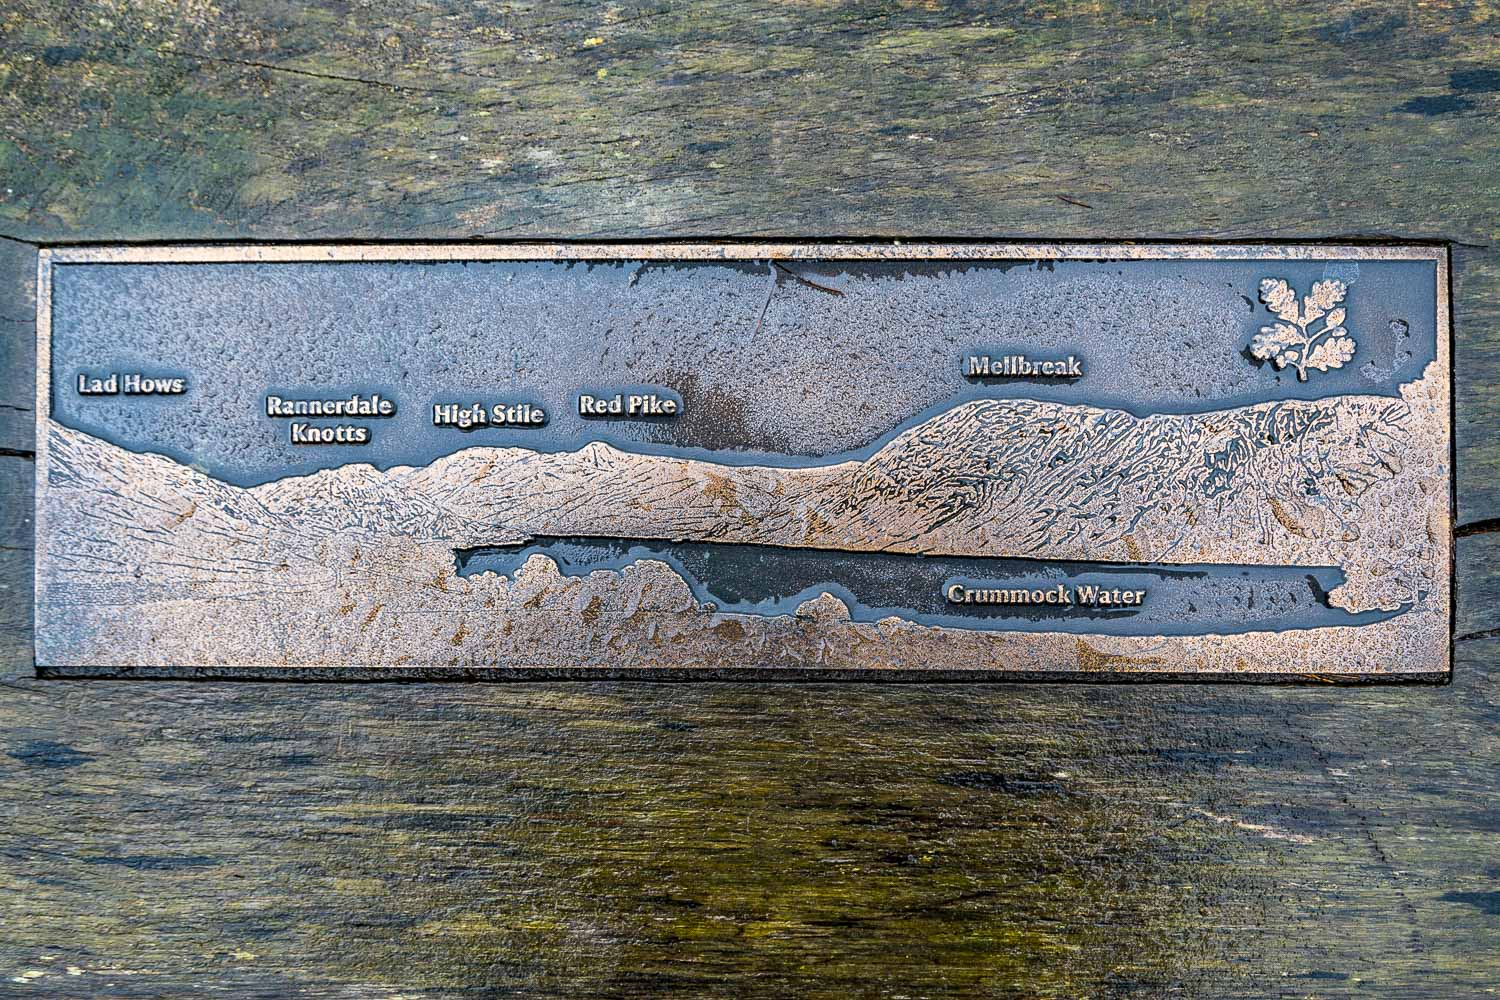 Crummock Water bench